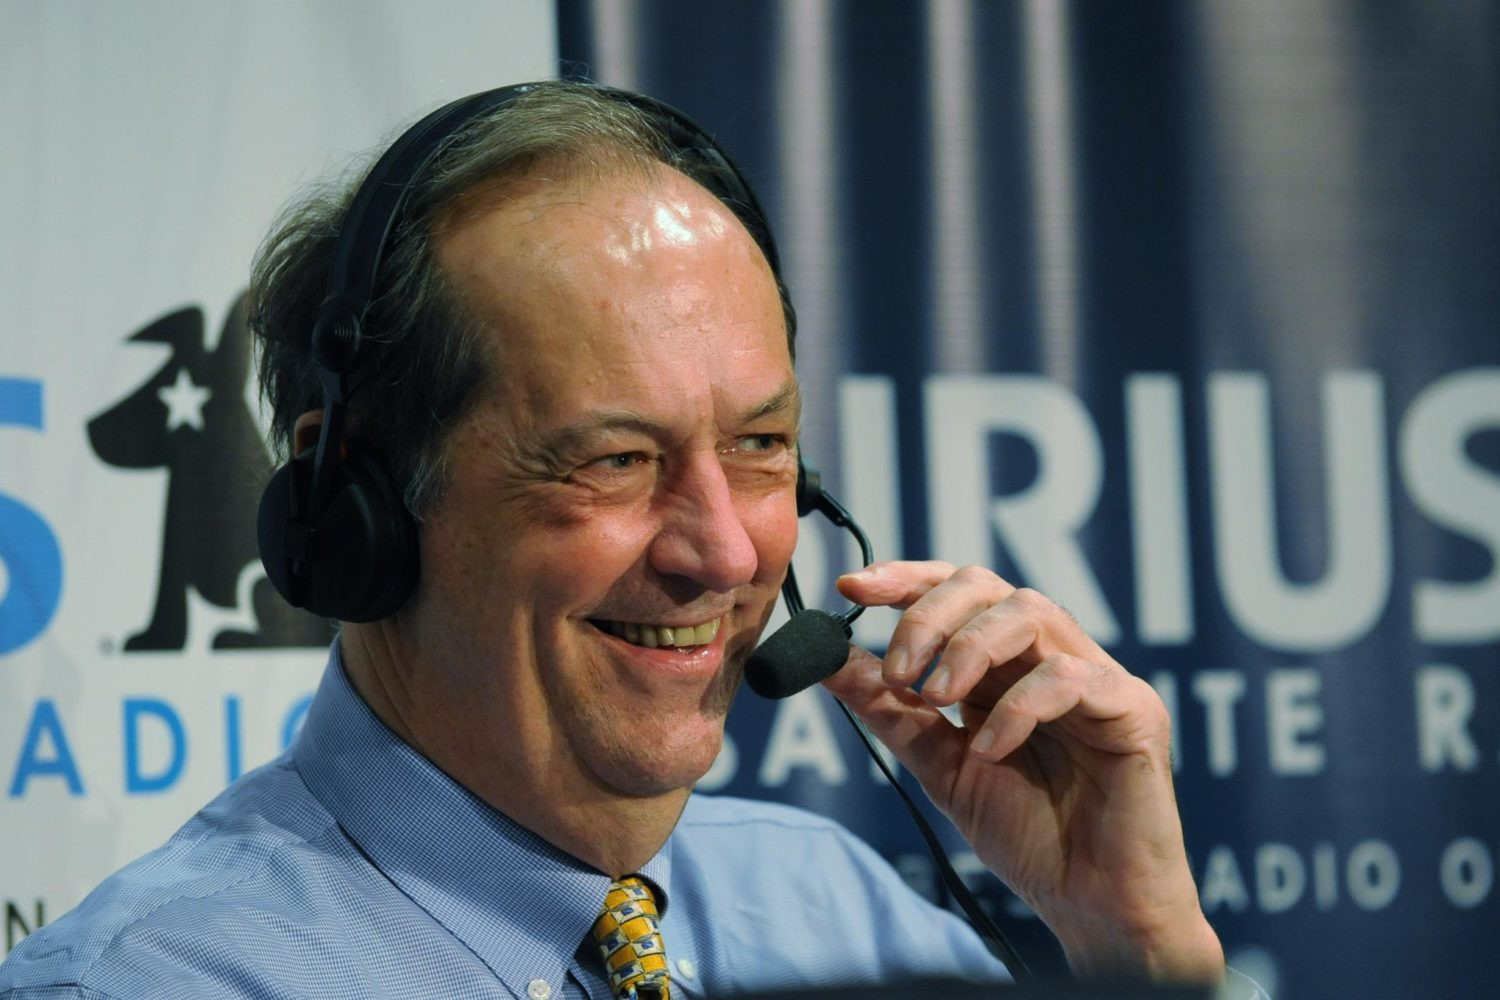 East Coast Gaming Conference is all about sports betting but Bill Bradley won't be joining